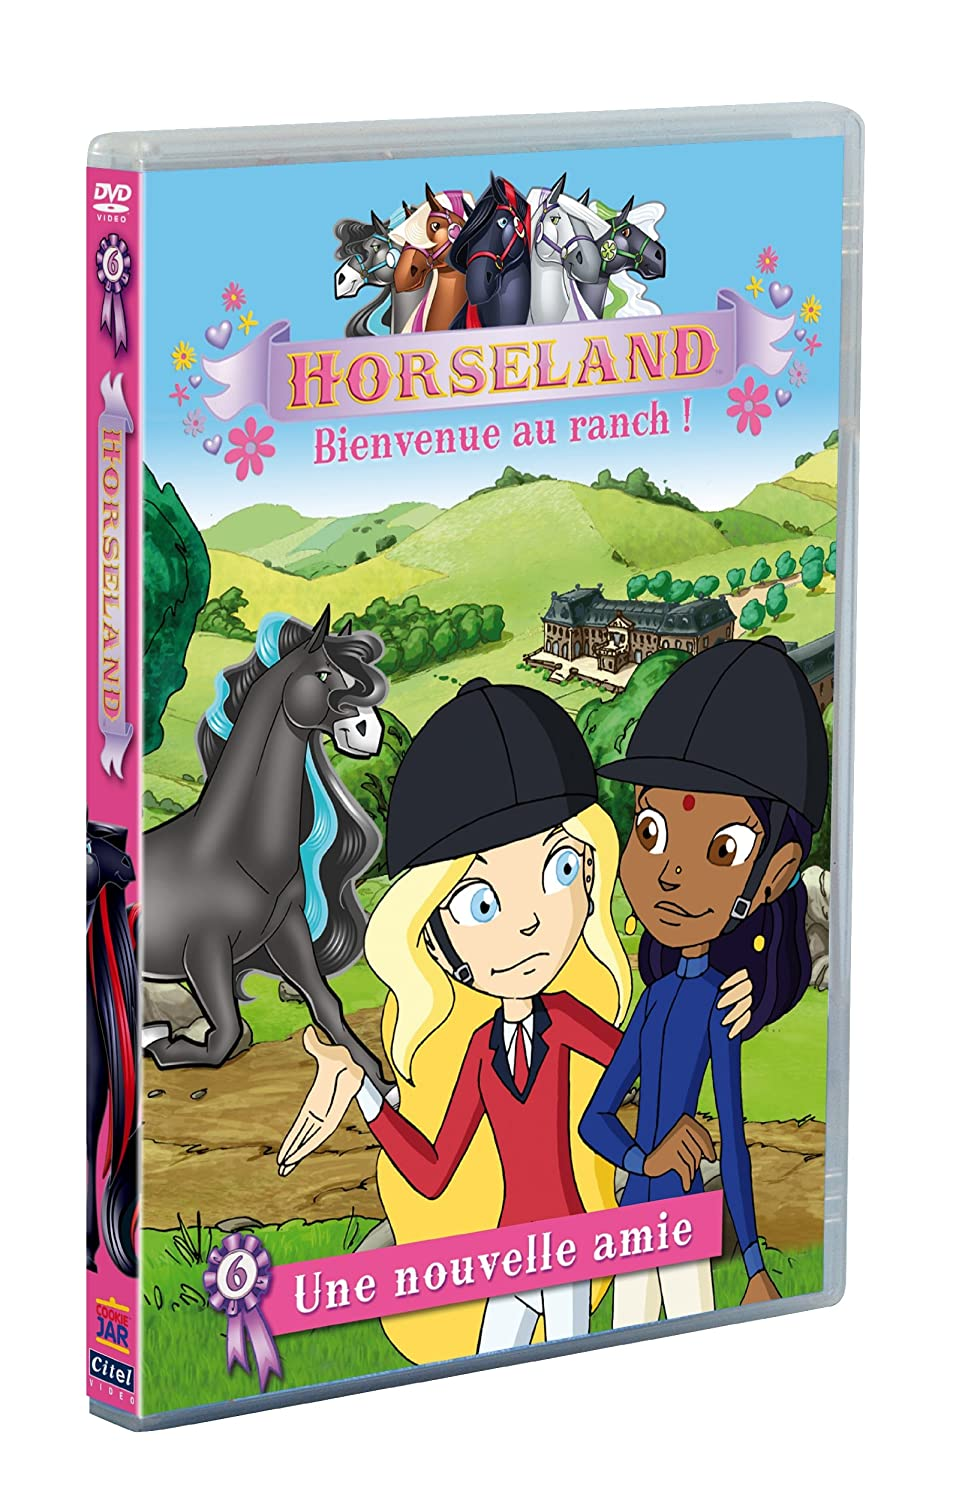 Amazon Com Horseland Bienvenue Au Ranch Vol 6 Une